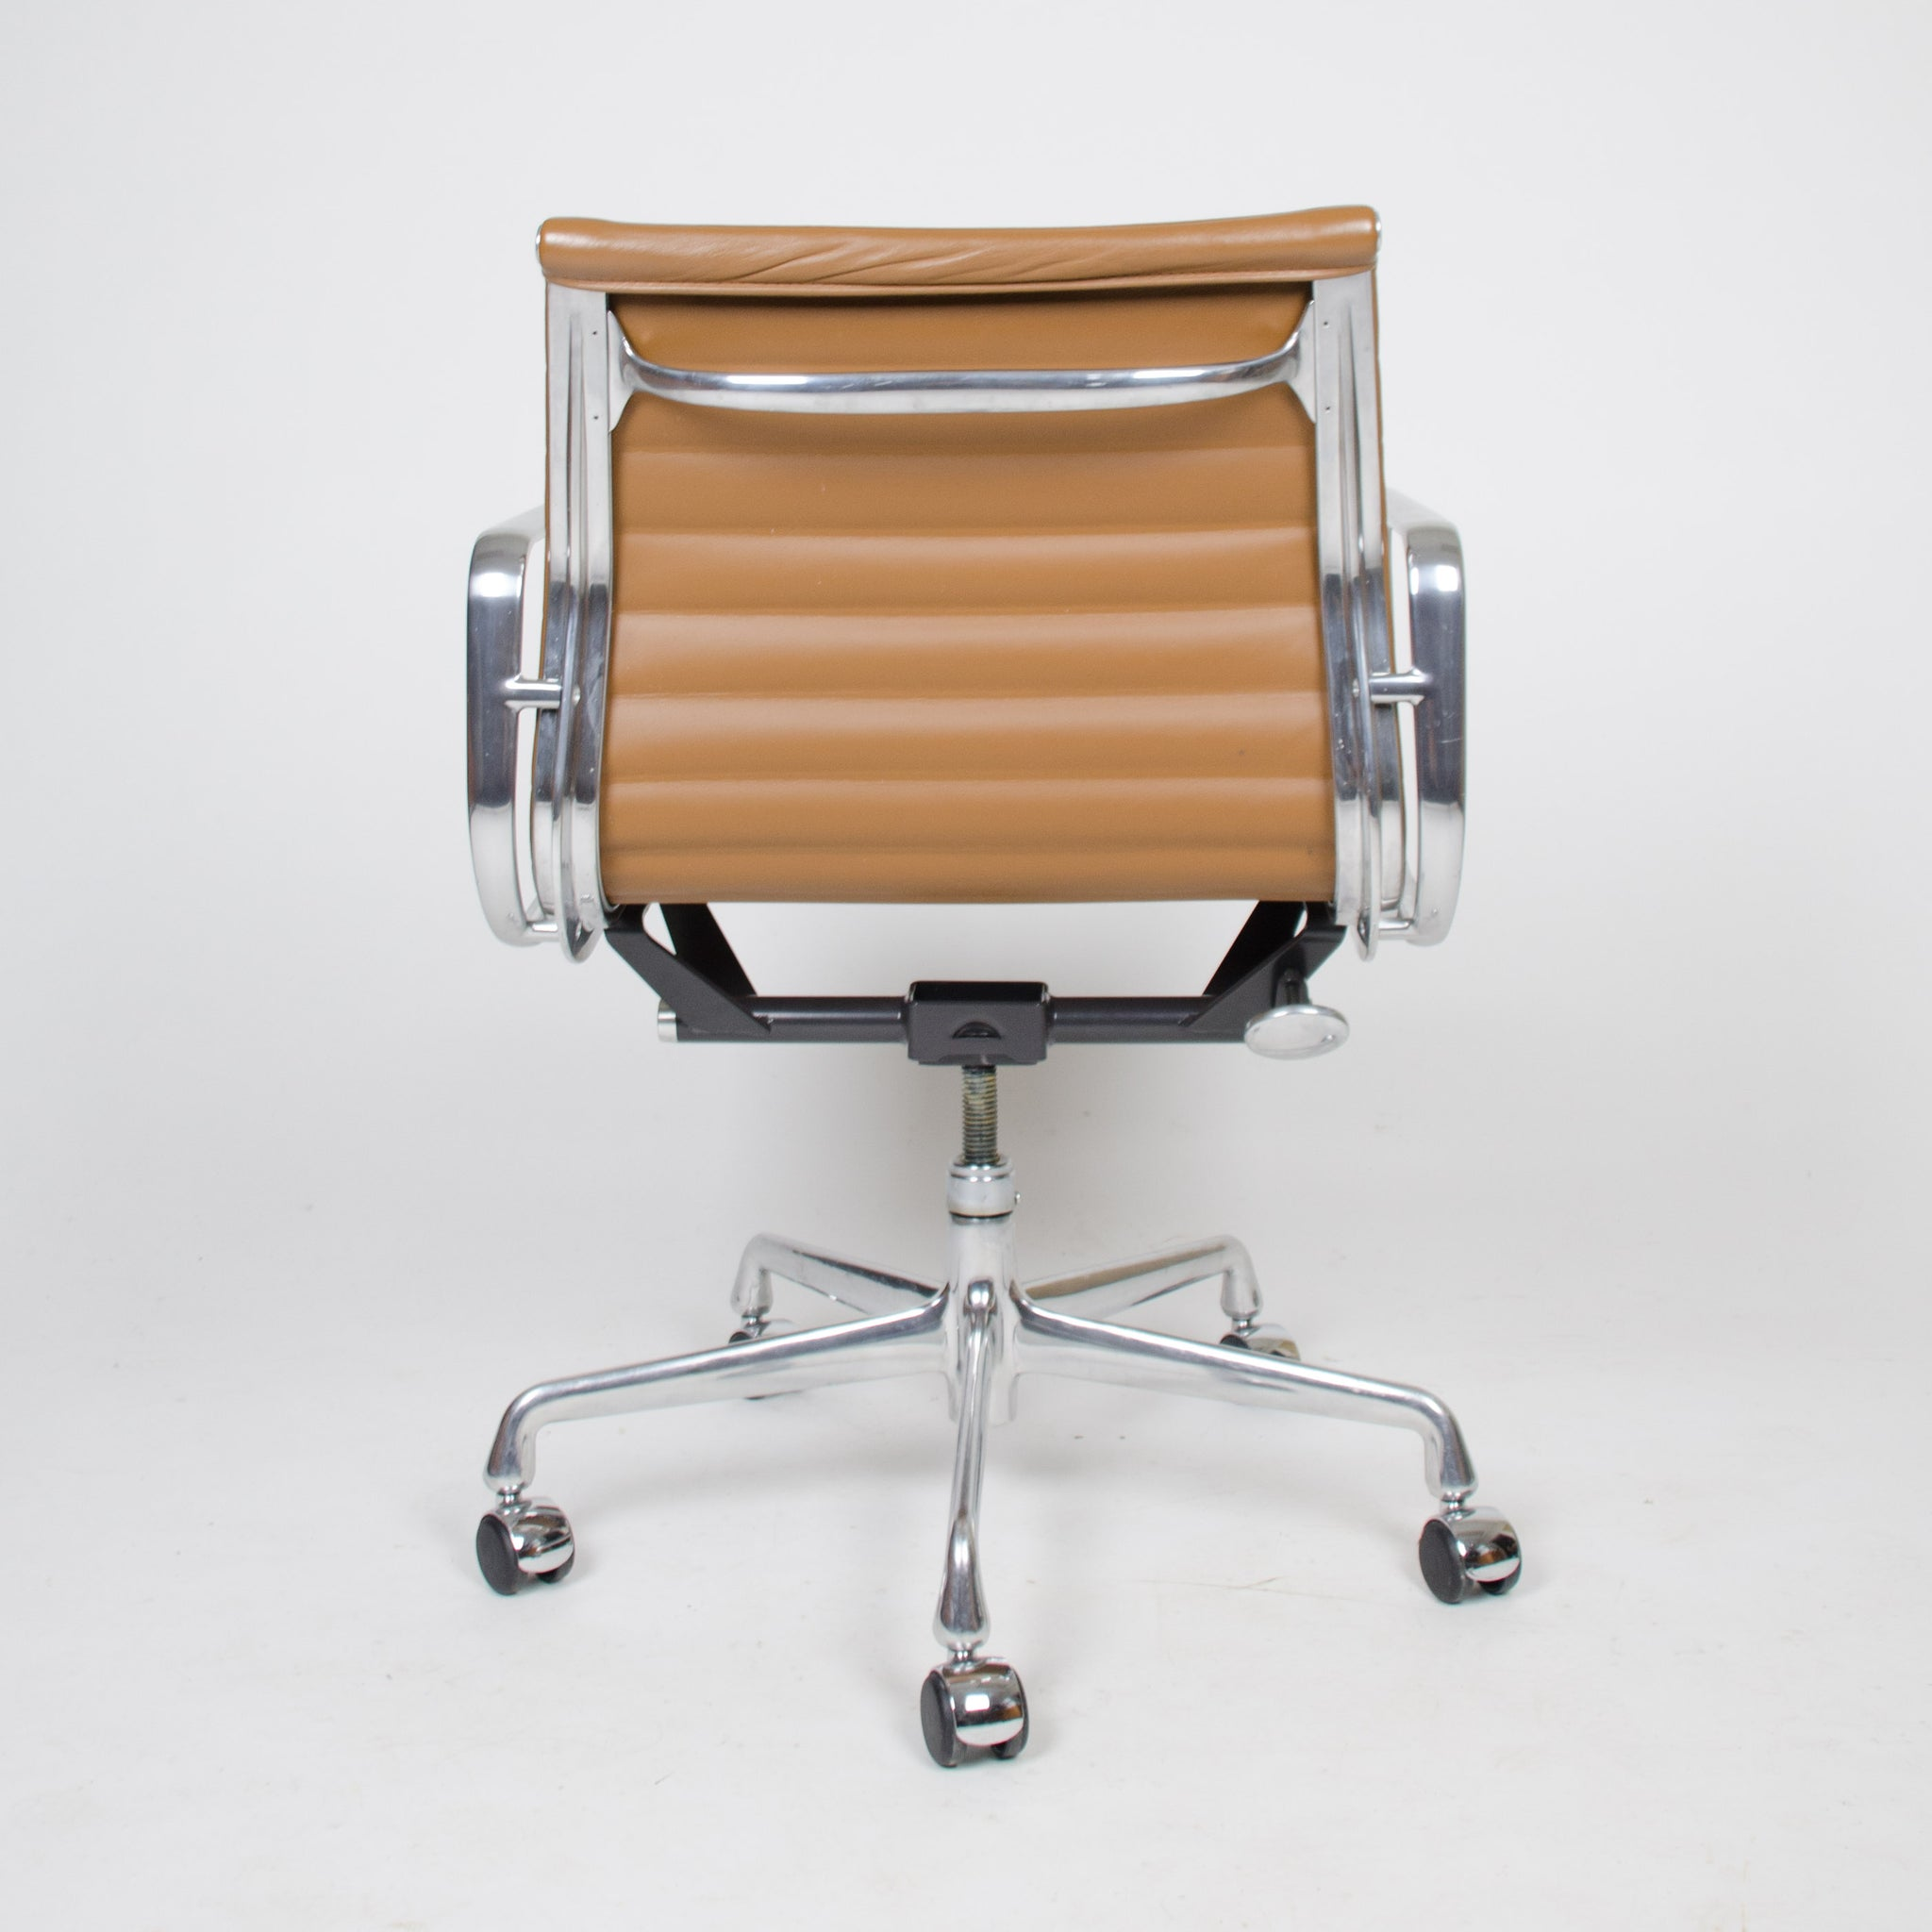 Eames Herman Miller 2000's Caramel Low Aluminum Group Desk Chairs 2x Available